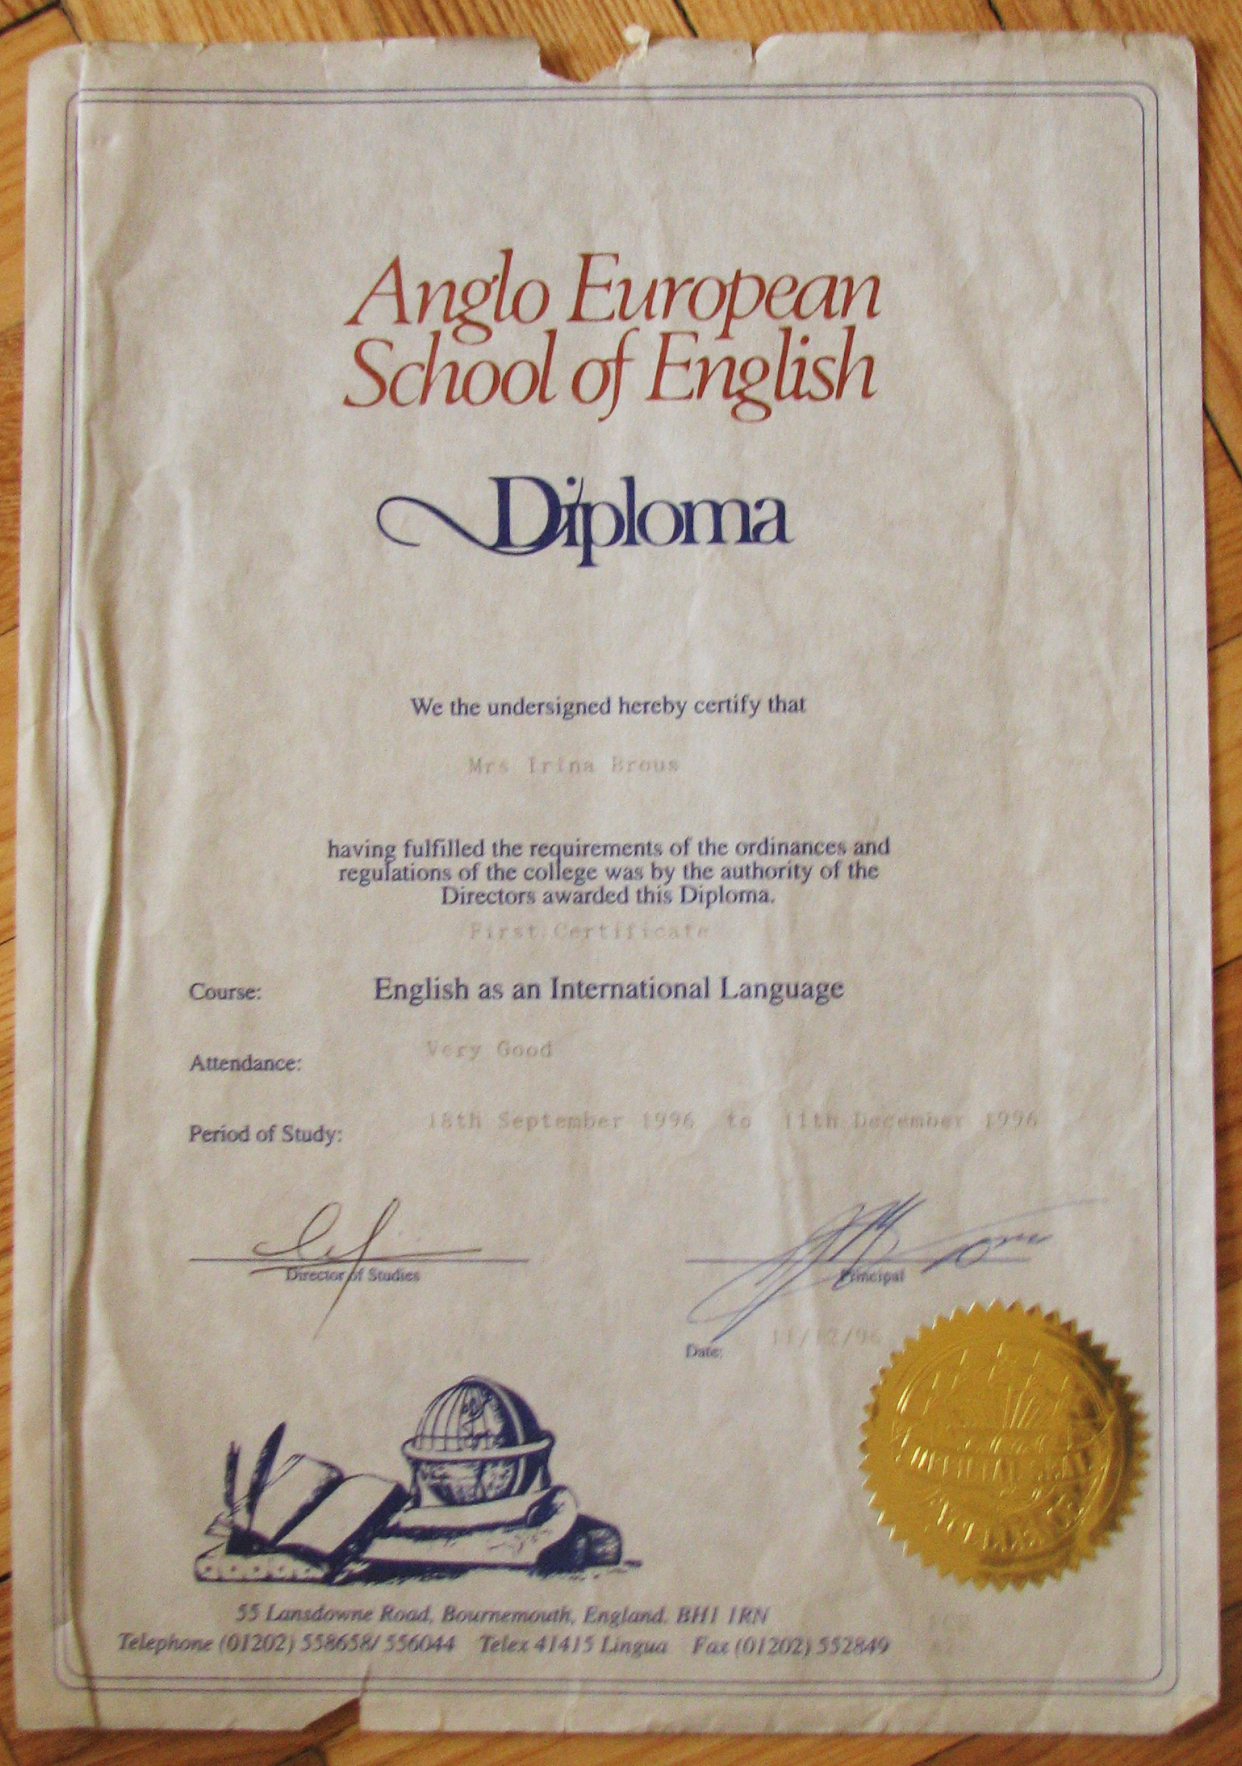 Irina Bruce - Anglo-European School of English